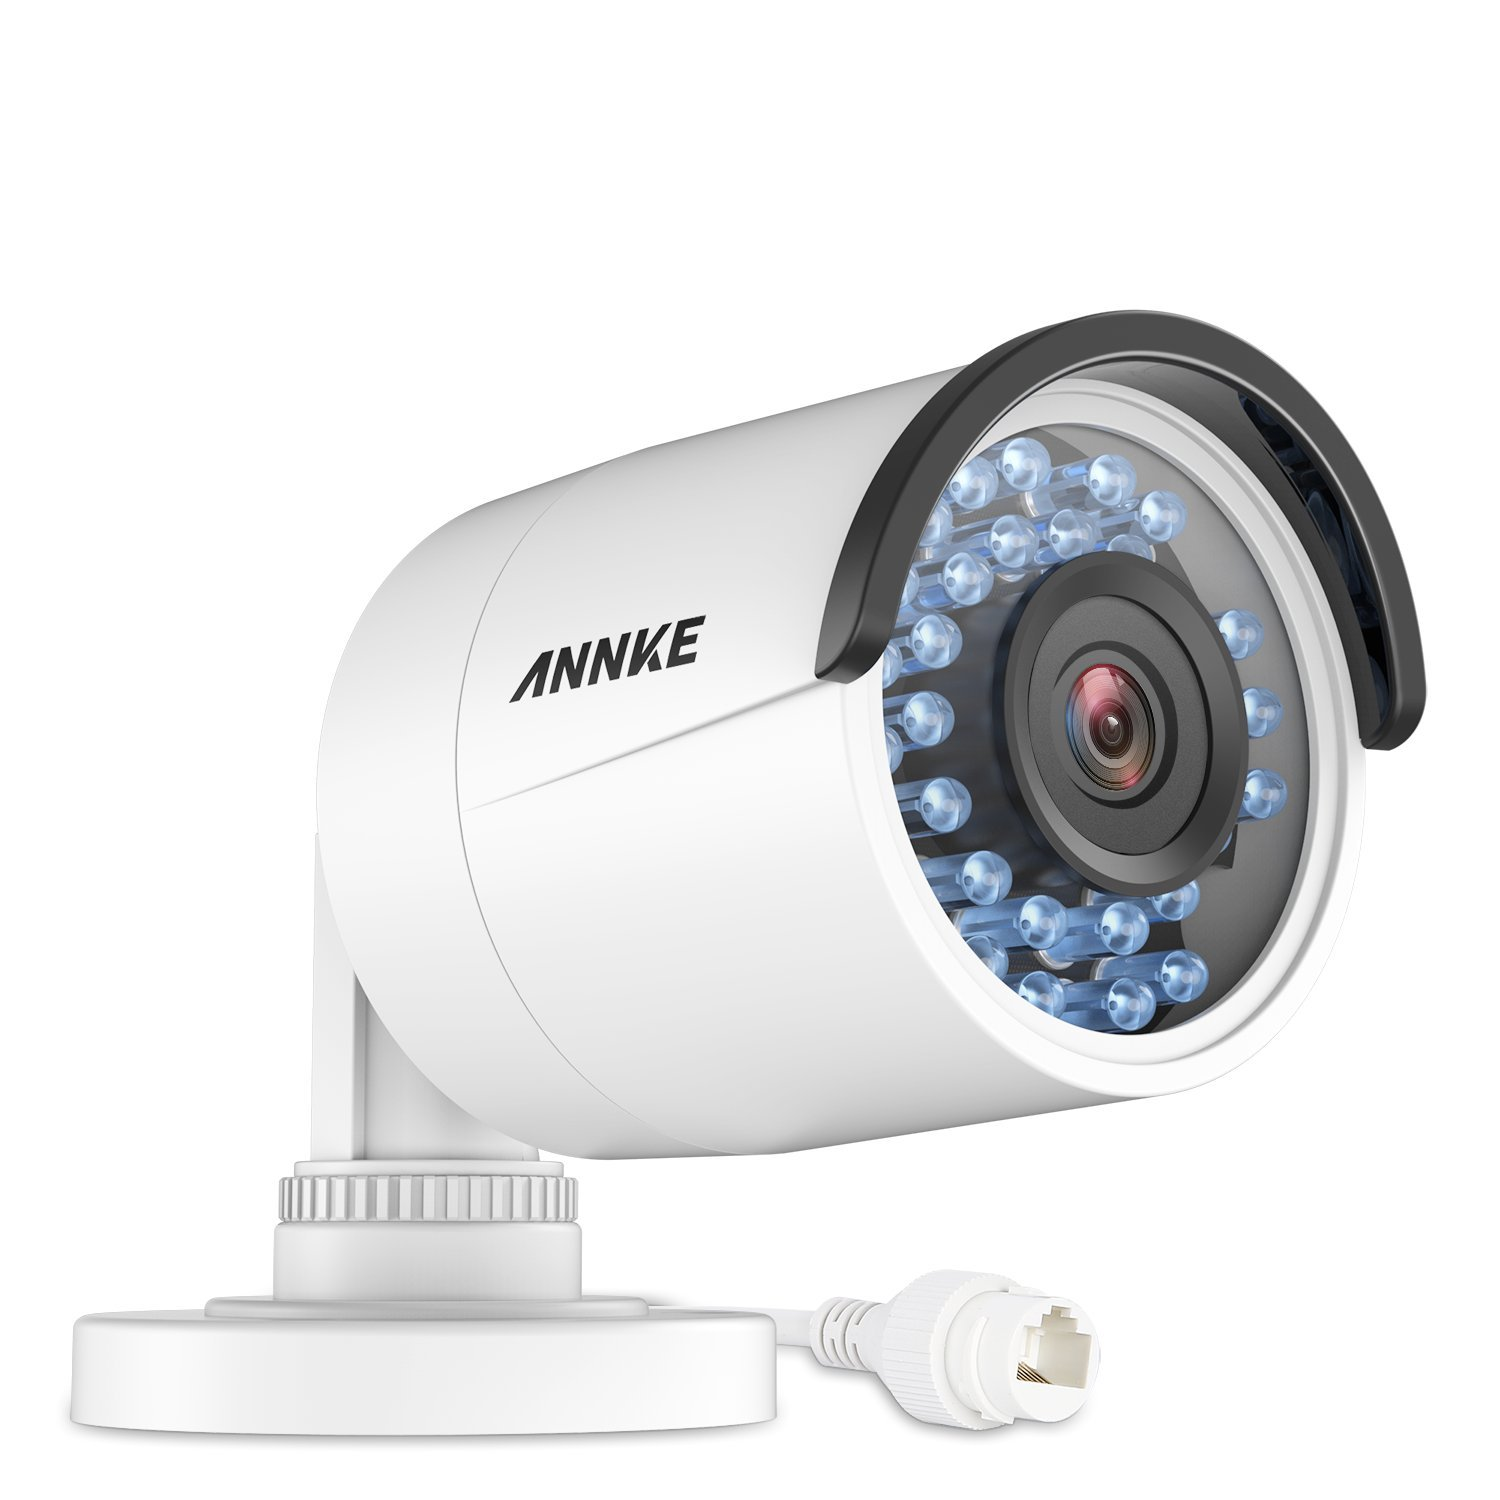 ANNKE 1.3MP 960P Network POE IP Camera, IP67 Weatherproof CCTV Camera by ANNKE